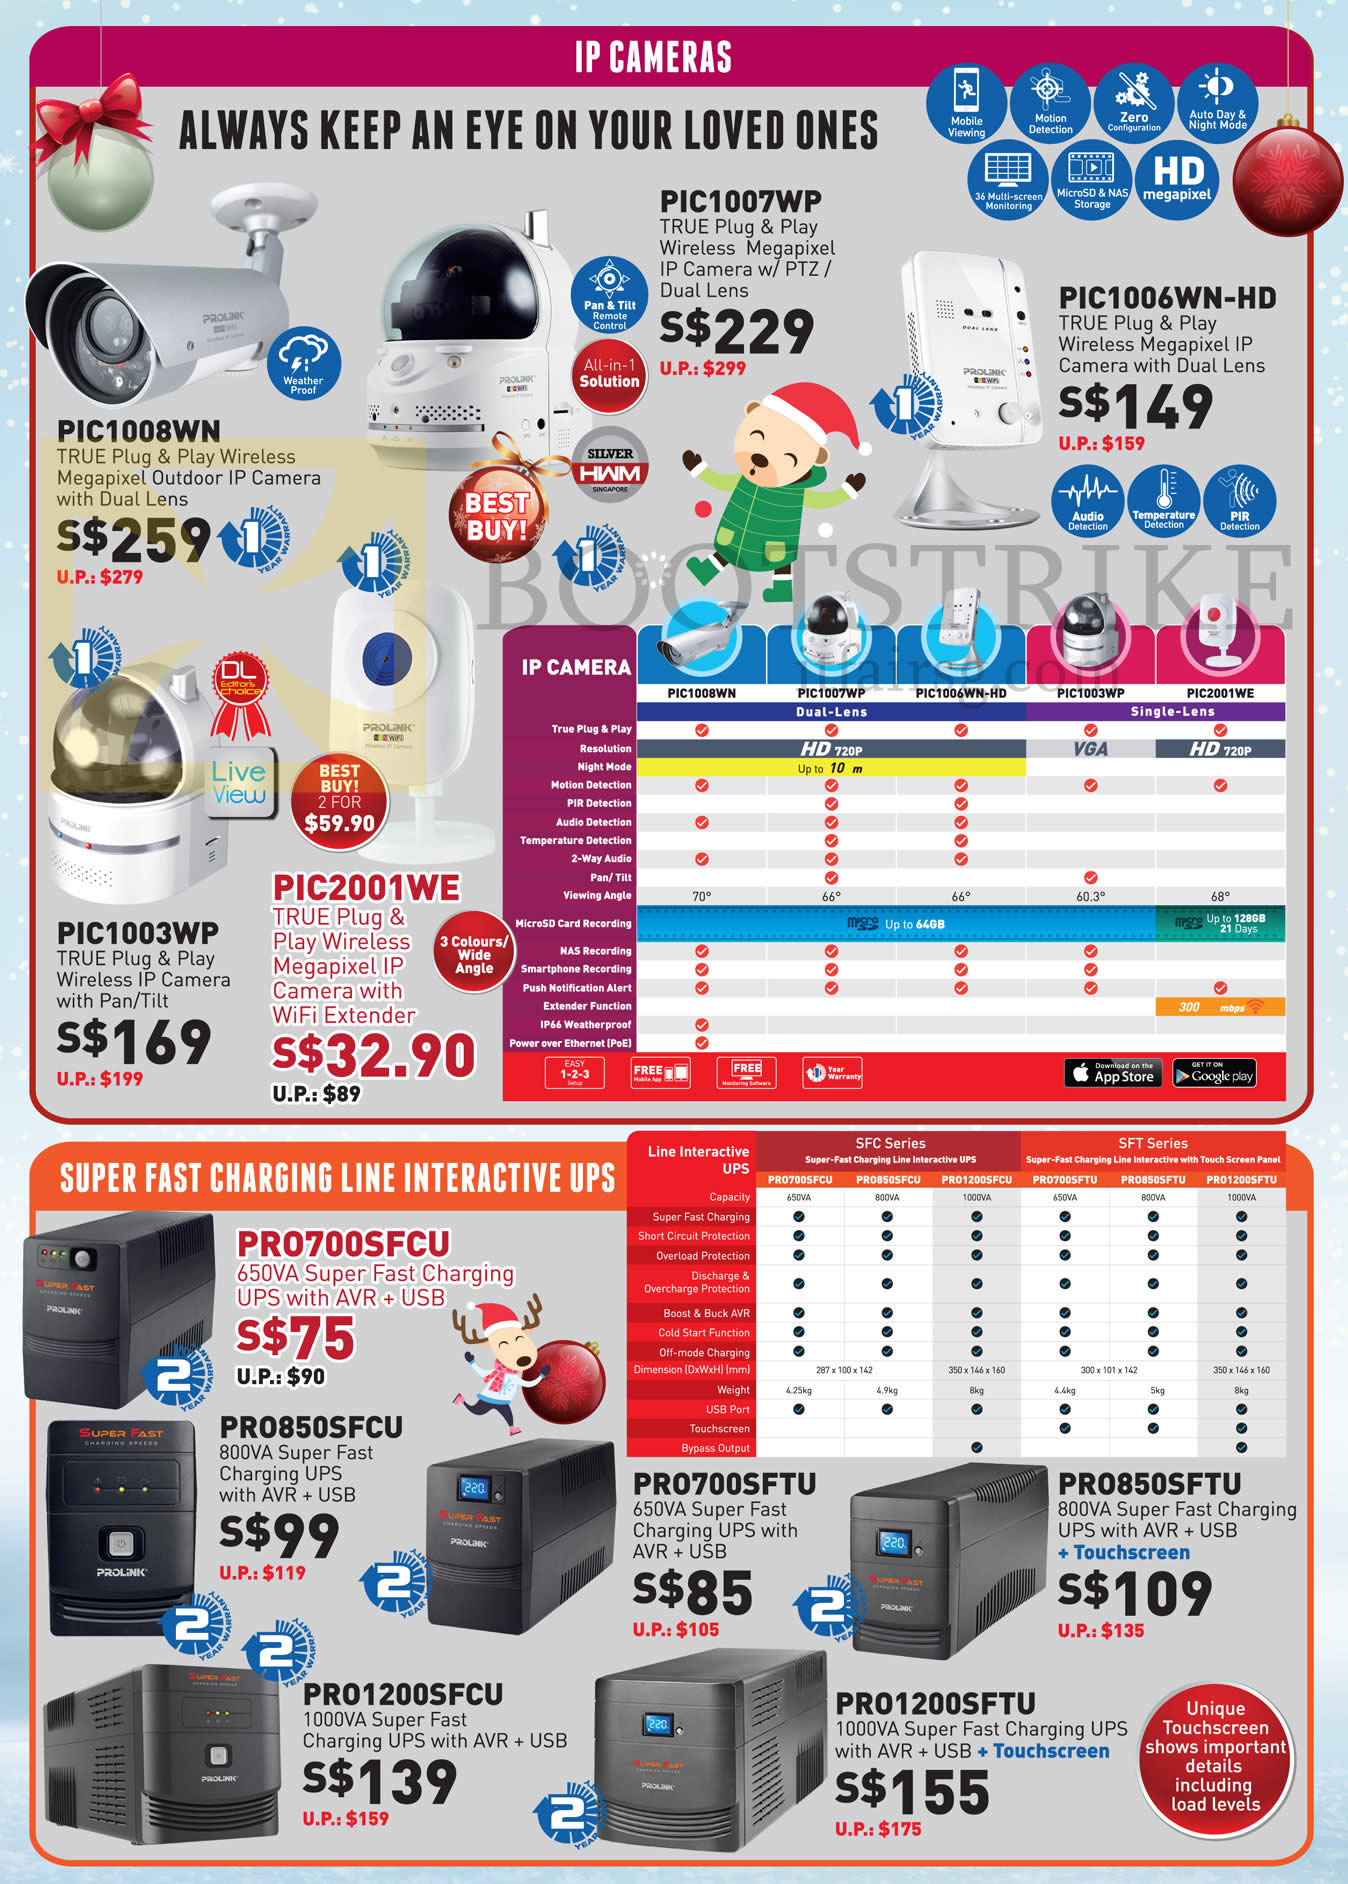 SITEX 2015 price list image brochure of Prolink IP Cameras, Interactive UPS PIC1007WP, 1008WN, 1006WN-HD, 1003WP, 2001WE, PRO700SFCU, 850SFCU, 1200SFCU, 700SFTU, 1200SFTU, 850SFTU